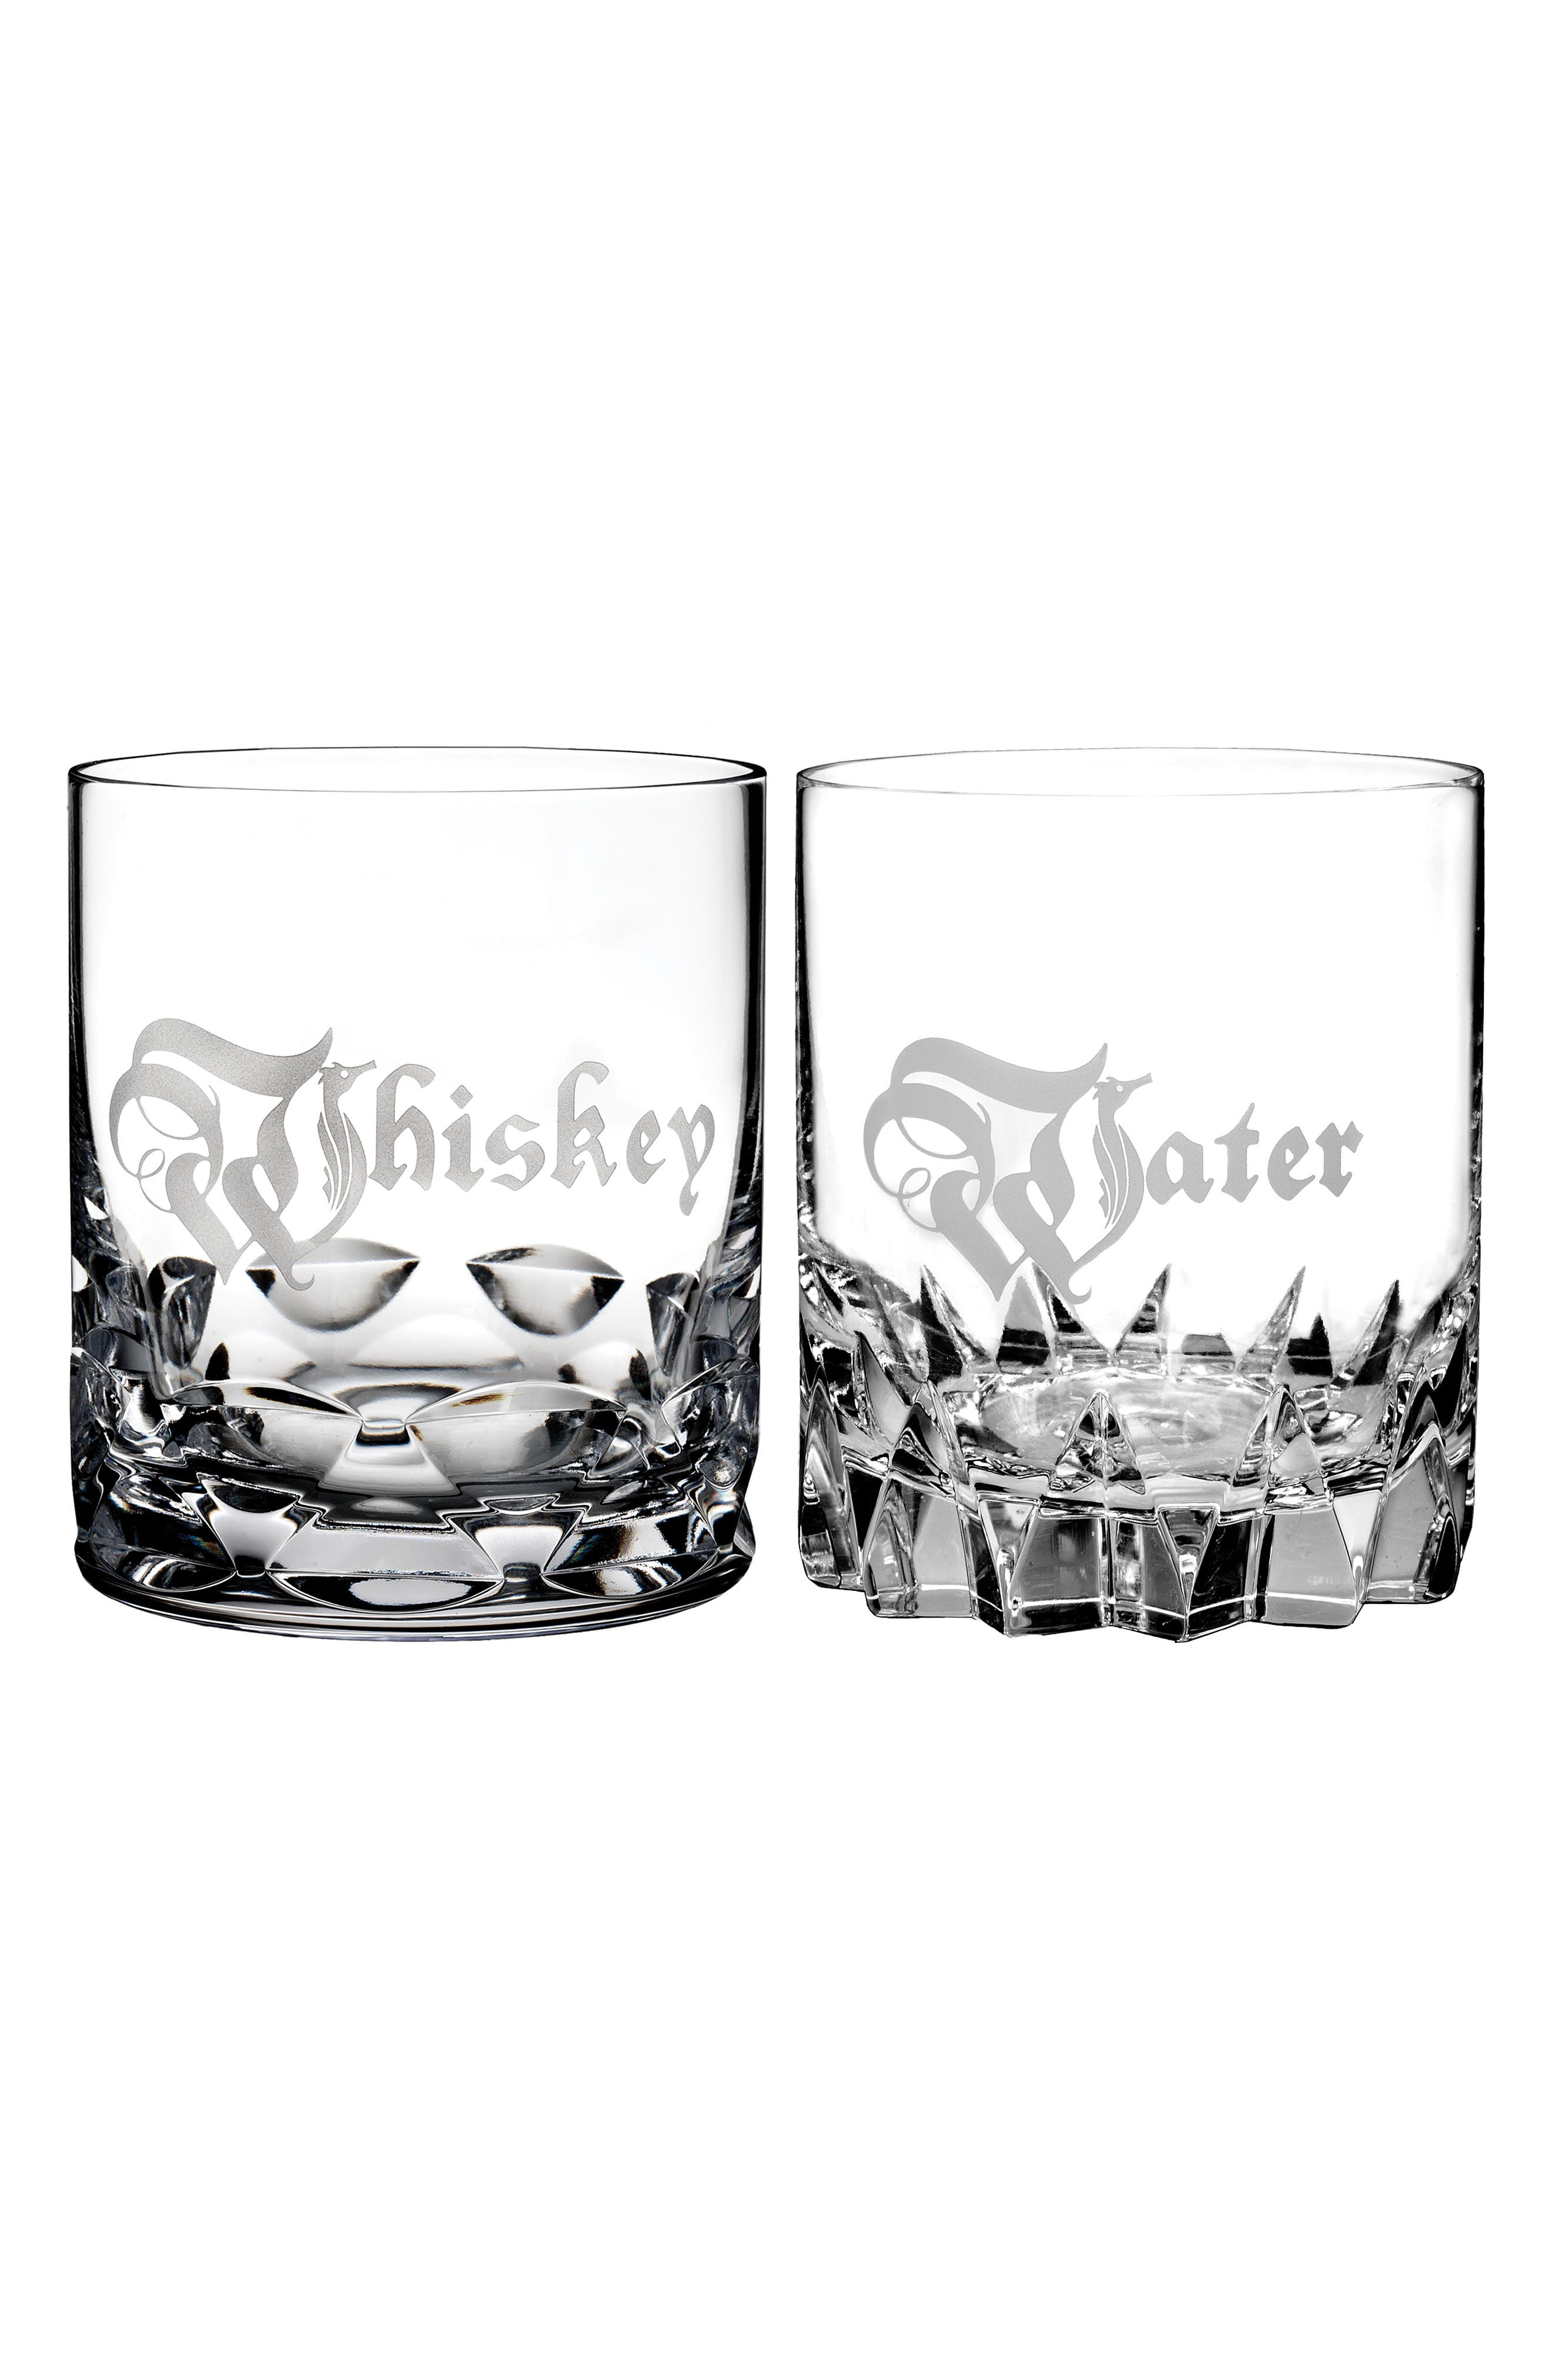 Short Stories Whiskey & Water Set of 2 Lead Crystal Double Old Fashioned Glasses,                             Main thumbnail 1, color,                             CRYSTAL